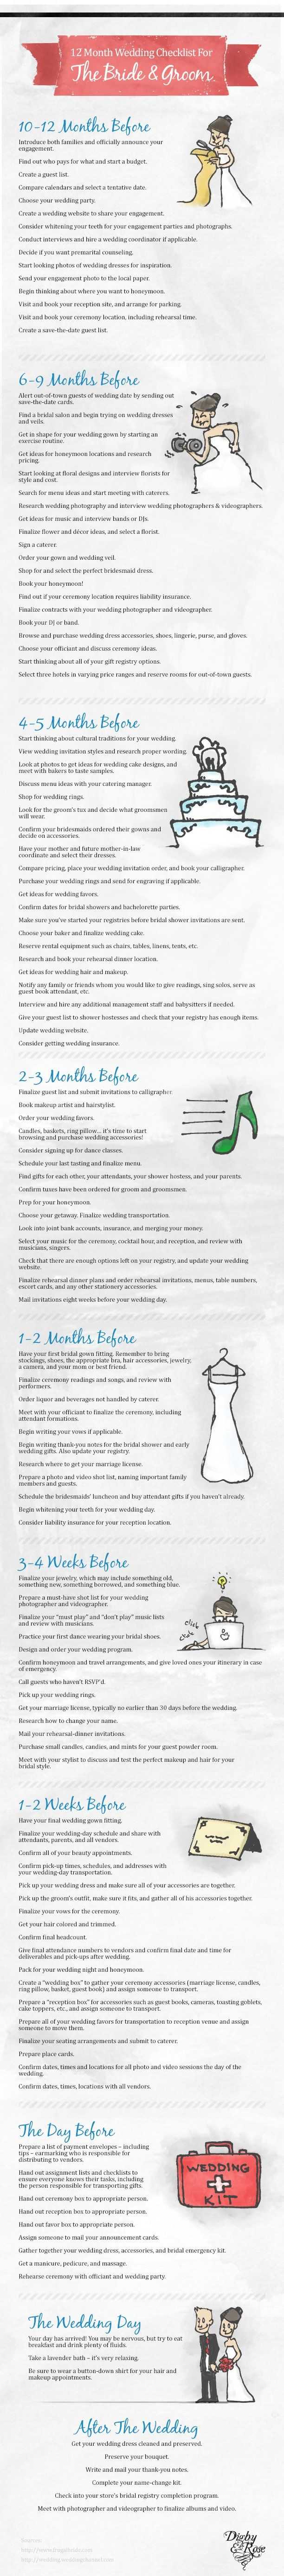 A Super Helpful 12 Month Wedding Planning Checklist - a Very Useful Resource To Help You Plan Your Wedding At a Glance!..... probably more than you need, but good referencr to start a list..